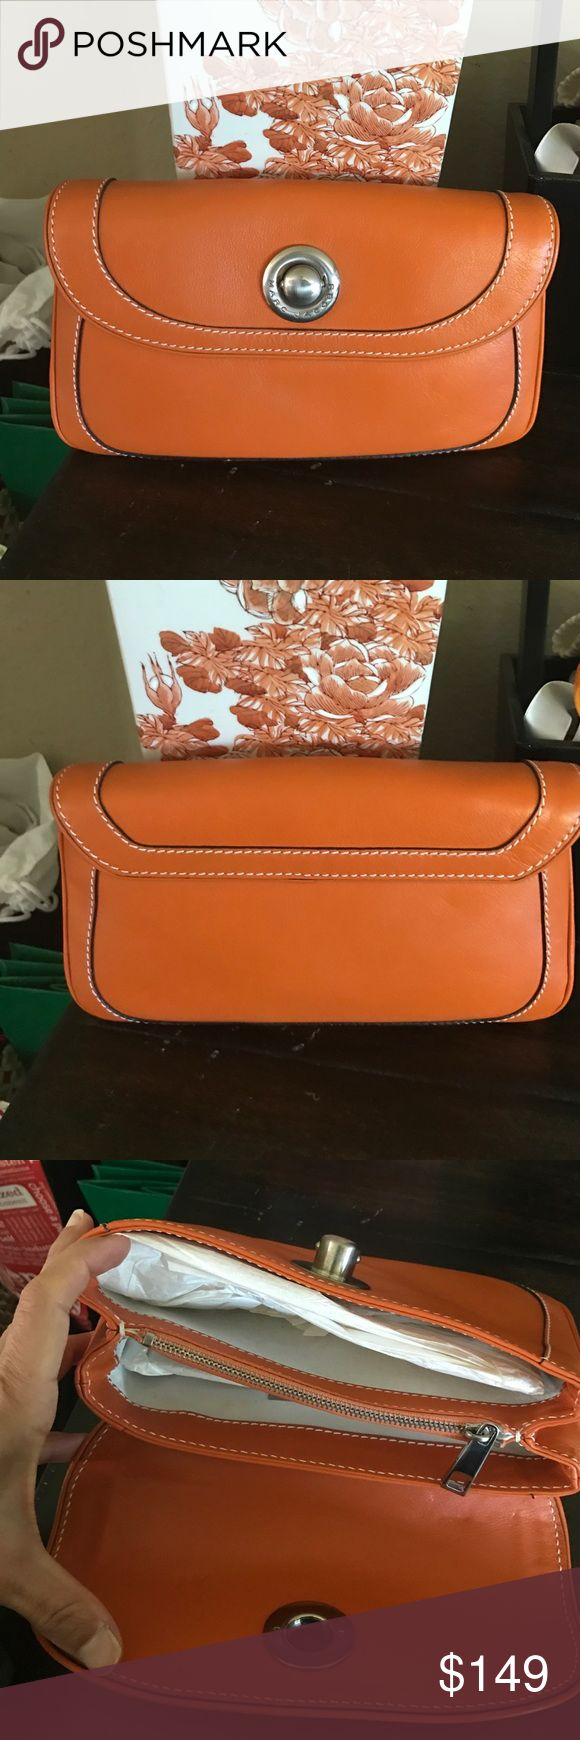 💜authentic Marc Jacobs orange clutch Gorgeous orange leather clutch by Marc Jacobs. Perfect condition. Lined in suede. Marc Jacobs Bags Clutches & Wristlets